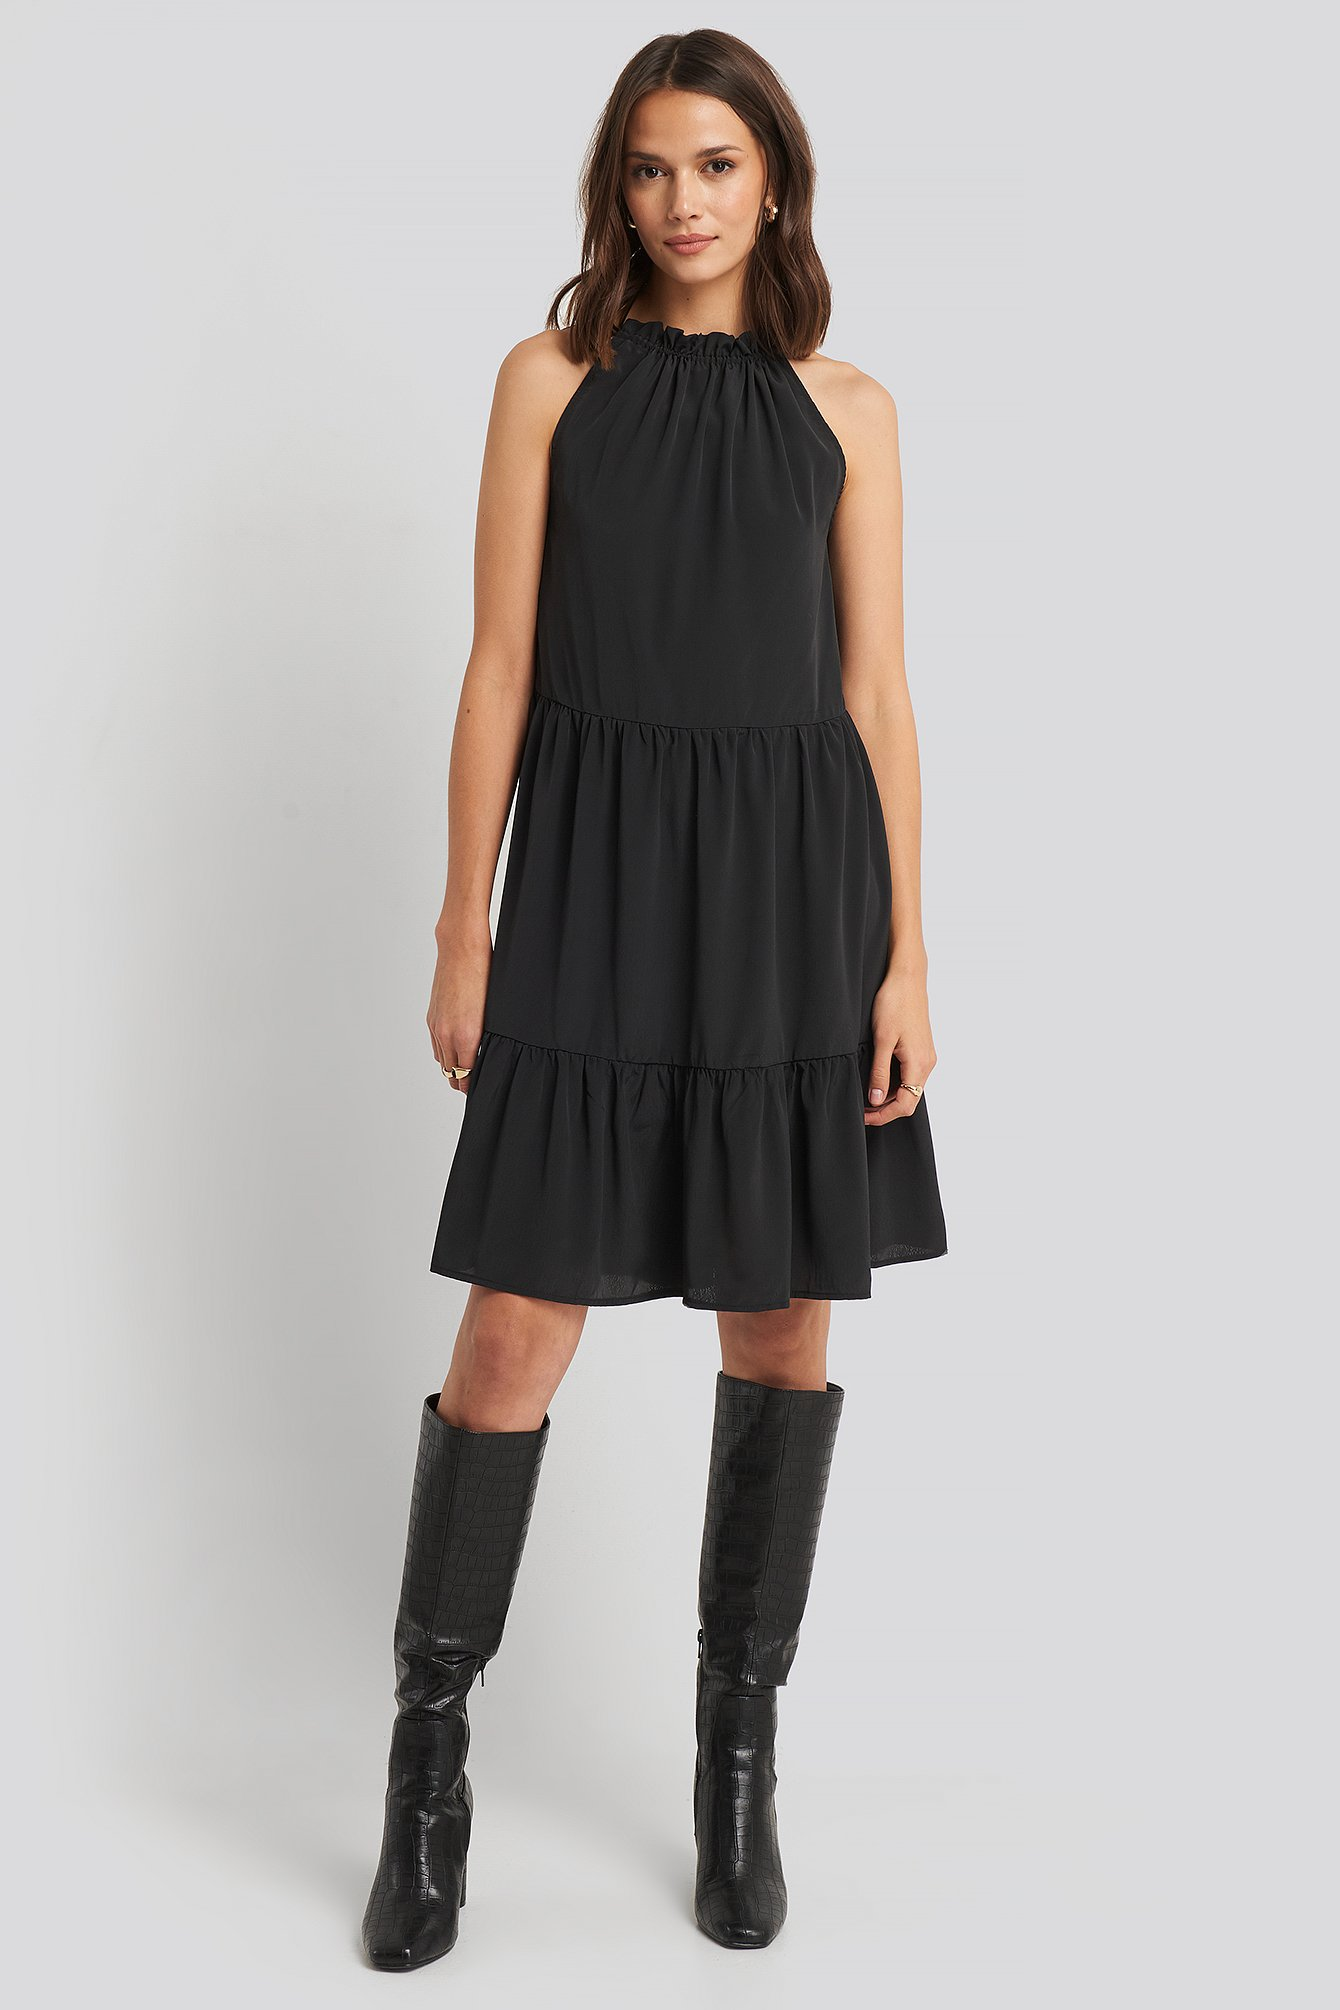 Sisters Point Glass Dress - Black